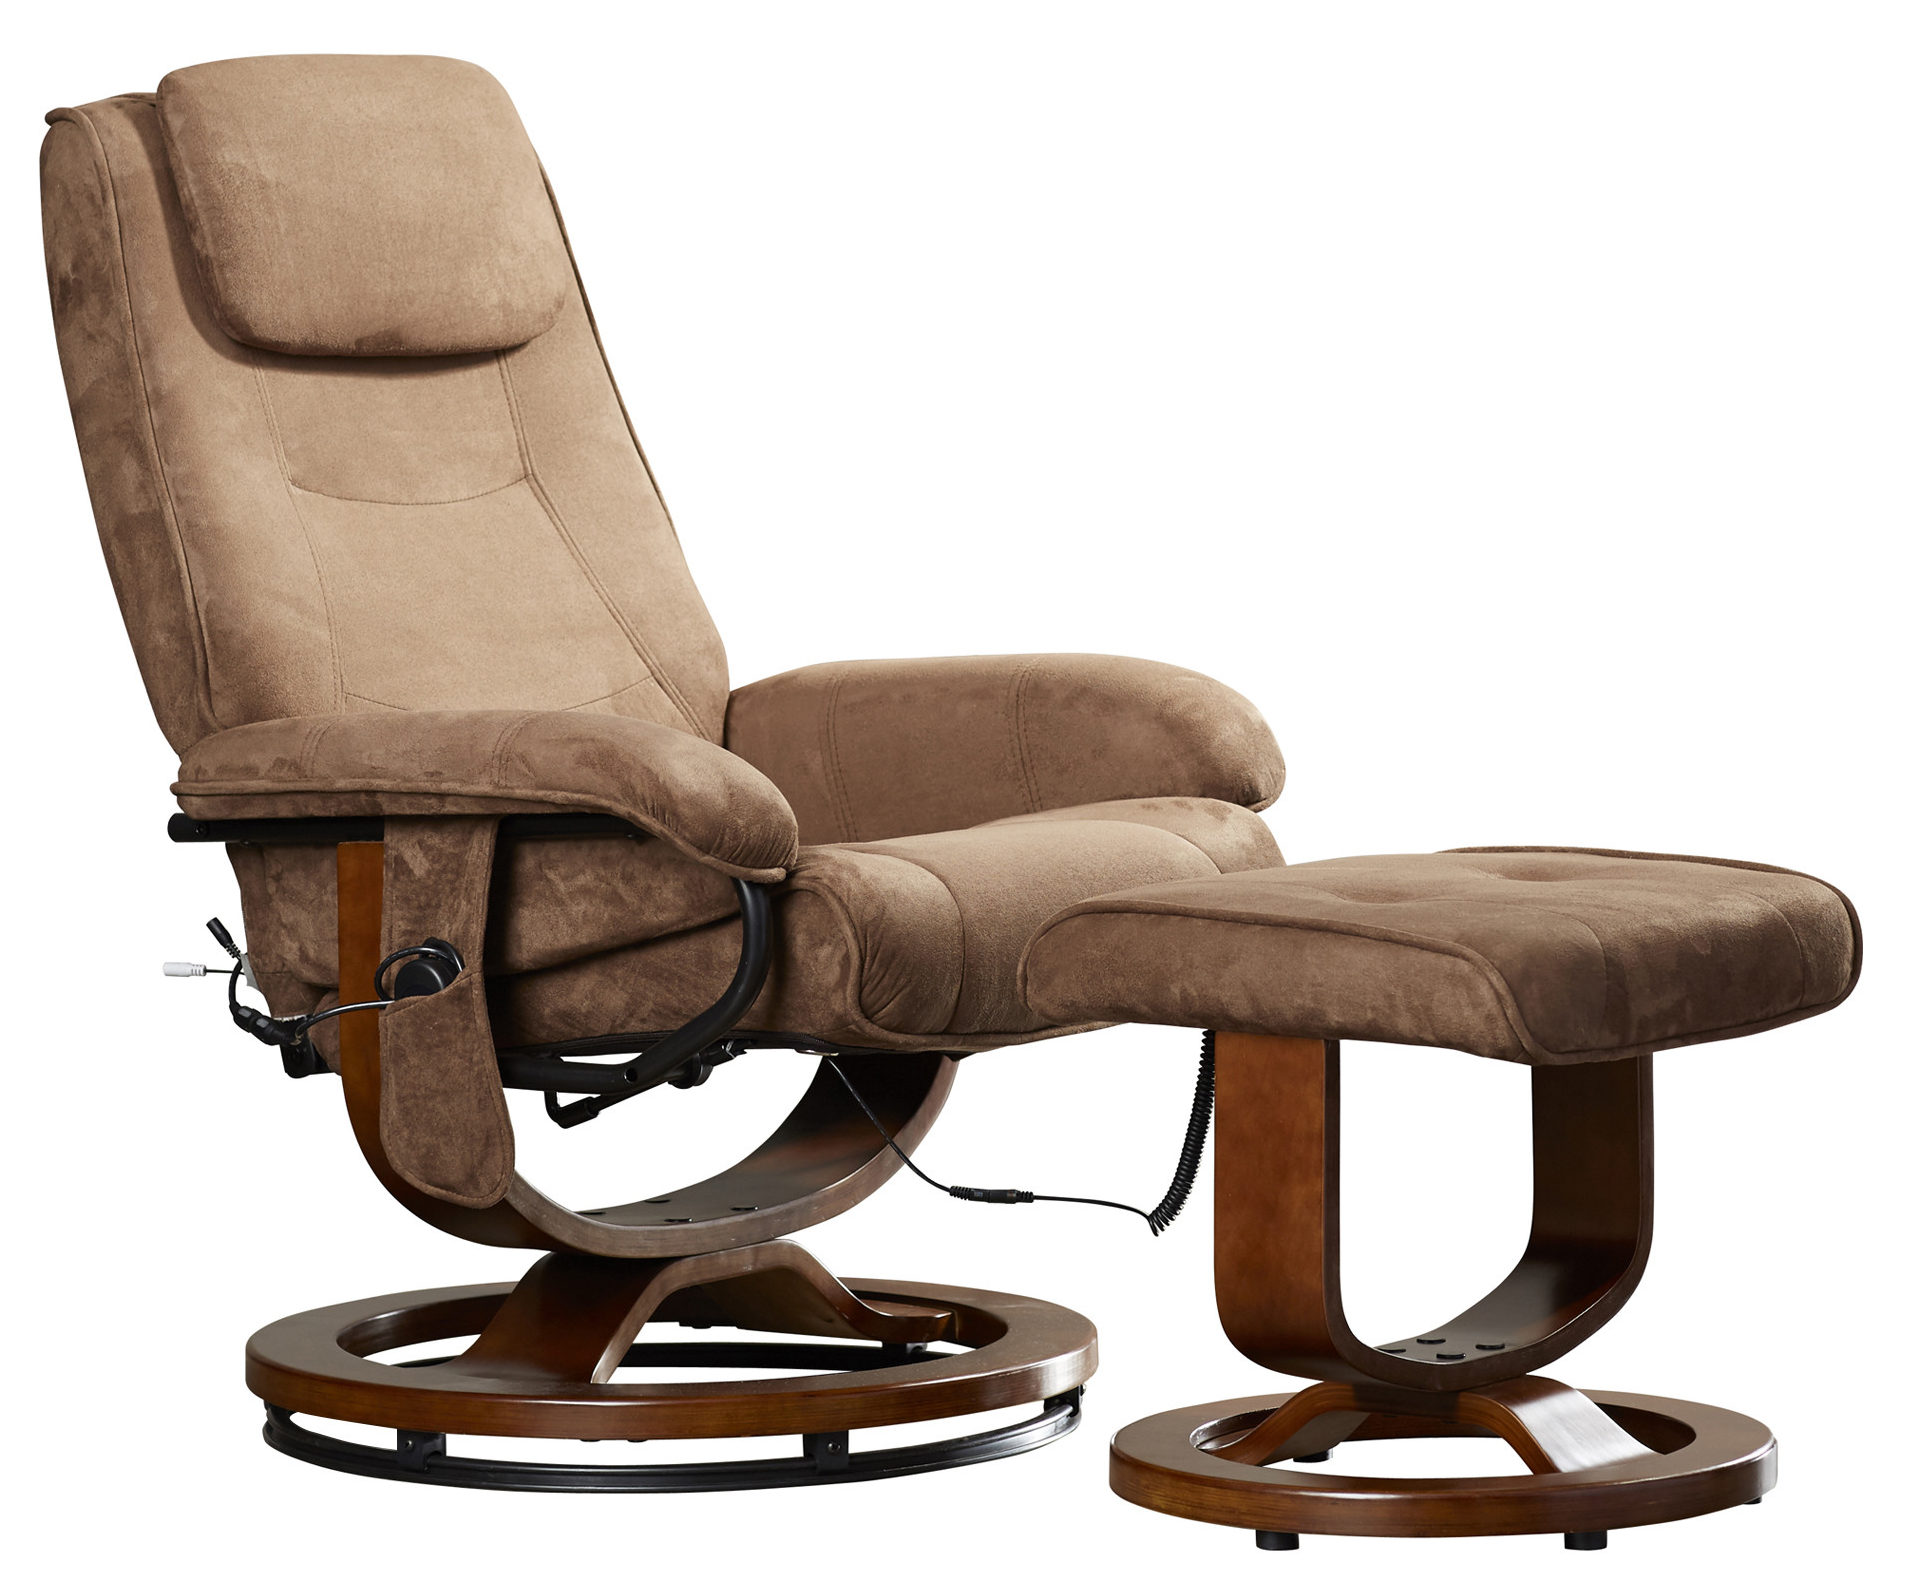 fujita massage chair review revolving service in coimbatore index may 2018